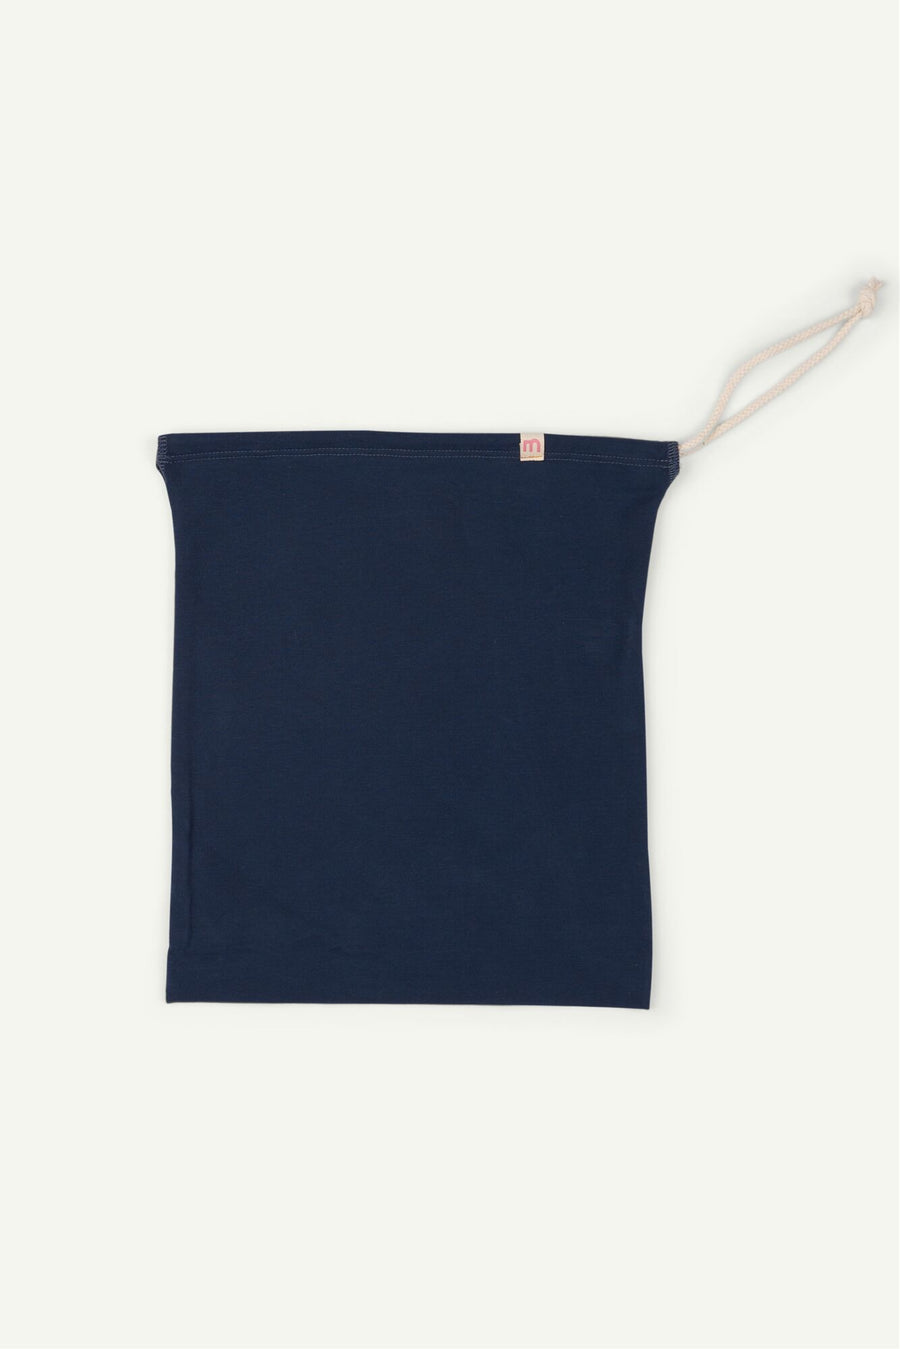 Navy Drawstring Bag